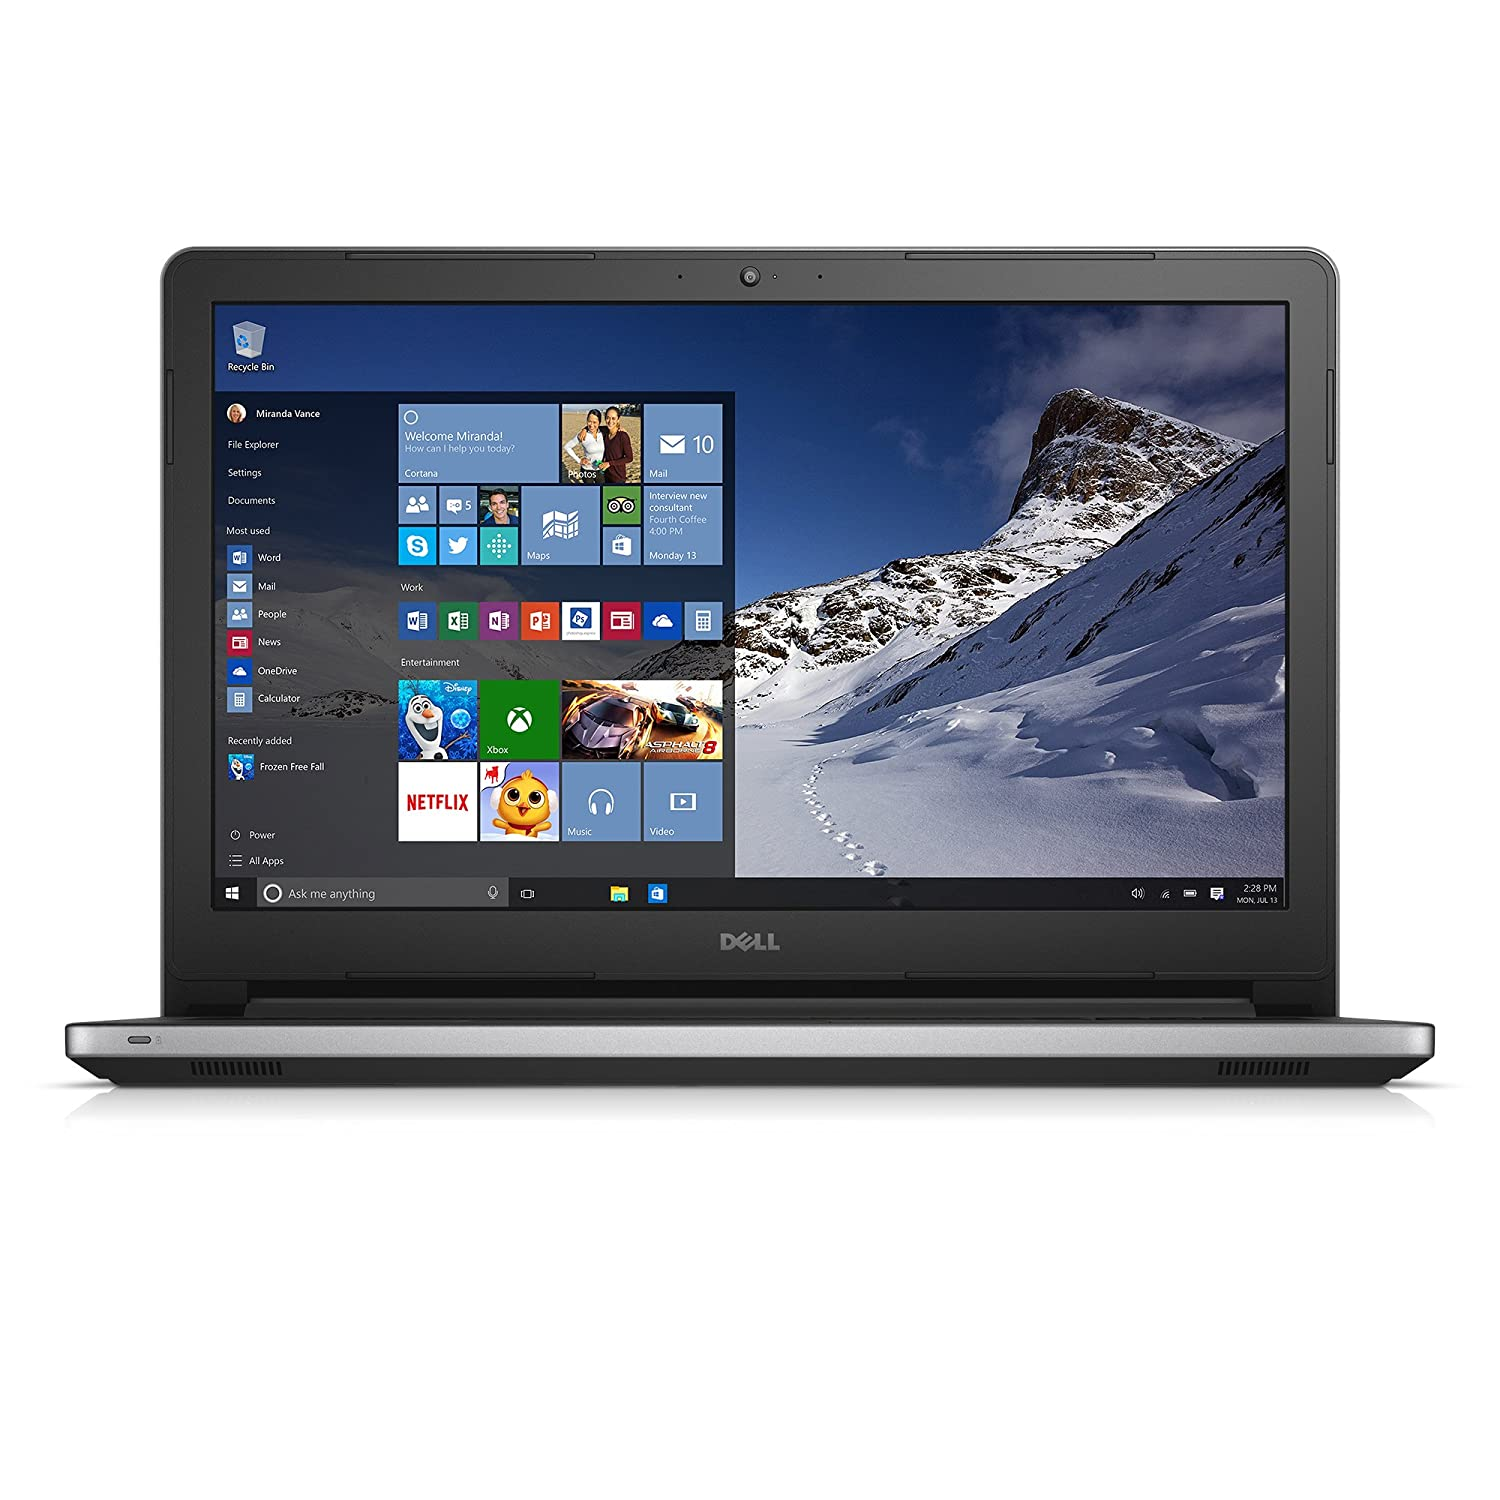 Dell Inspiron 15 5000 Series FHD 15 6 Inch Laptop (Intel Core i7 5550U, 16  GB RAM, 1 TB HDD, Silver) Integrated Intel HD Graphics [Discontinued by